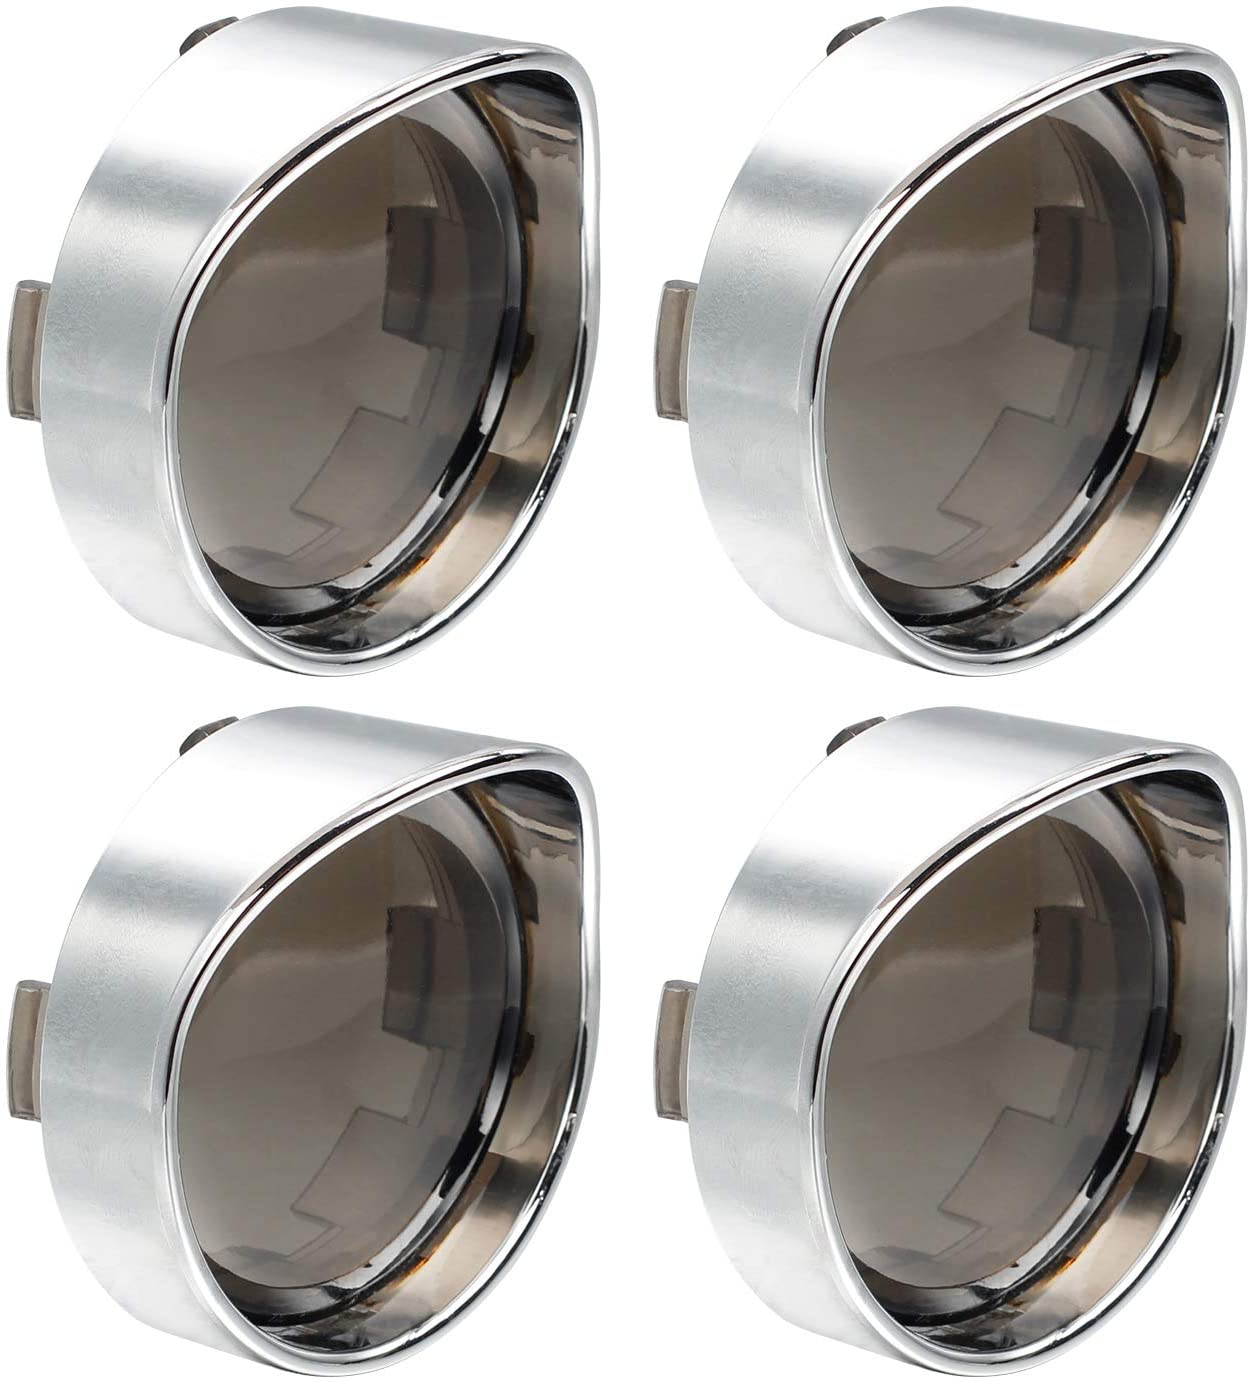 NTHREEAUTO Turn Signal Lens Cover with Chrome Visor Compatible with Harley Dyna Fatboy Softail Road Glide